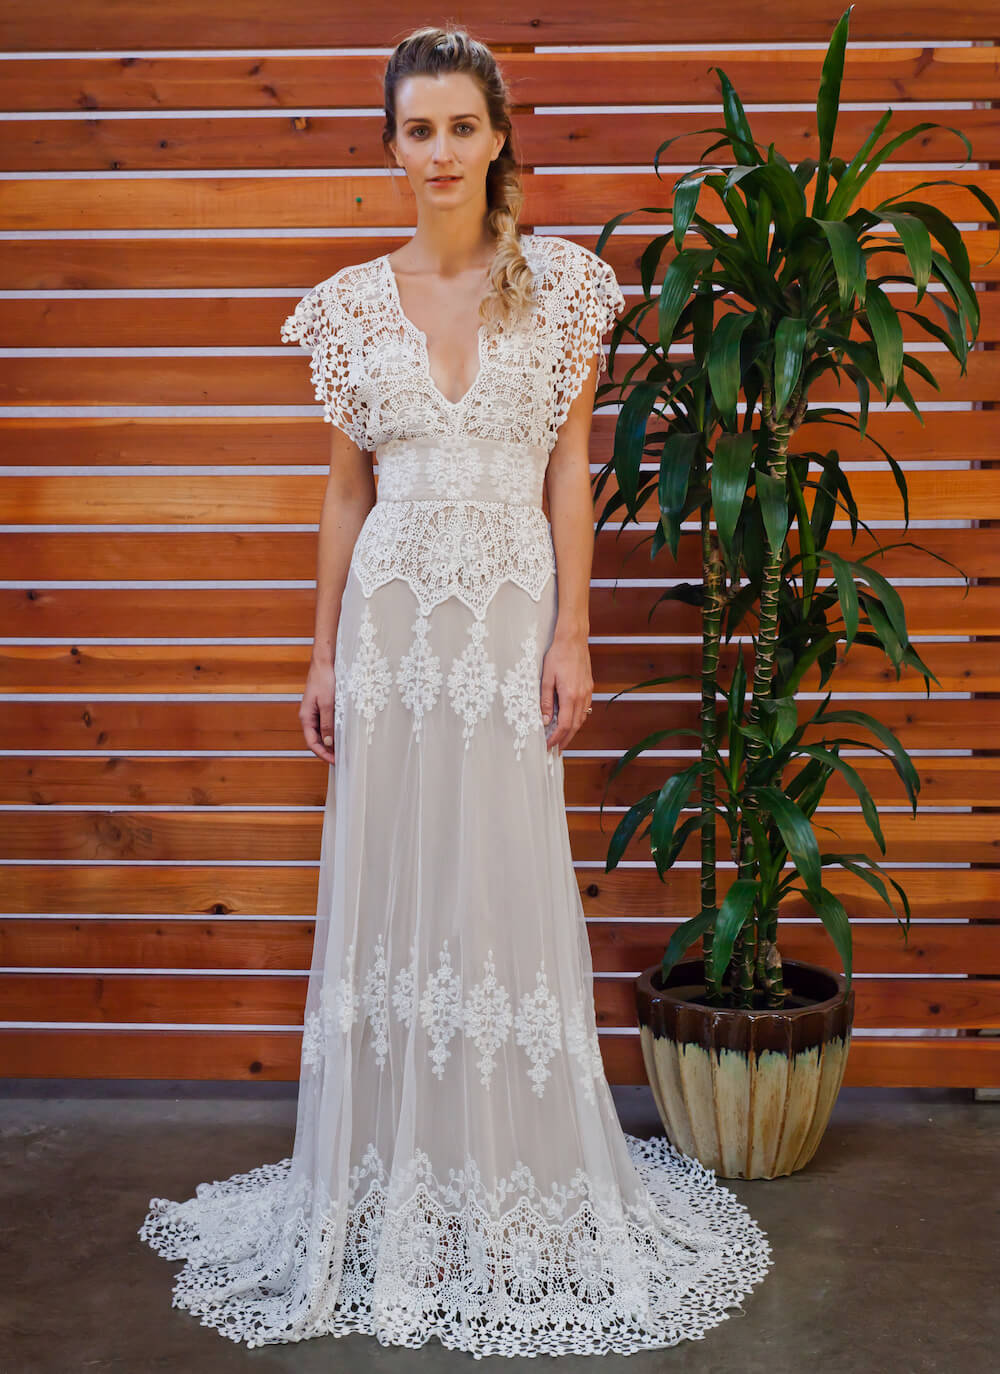 Azalea Draped Cotton Lace Wedding Dress